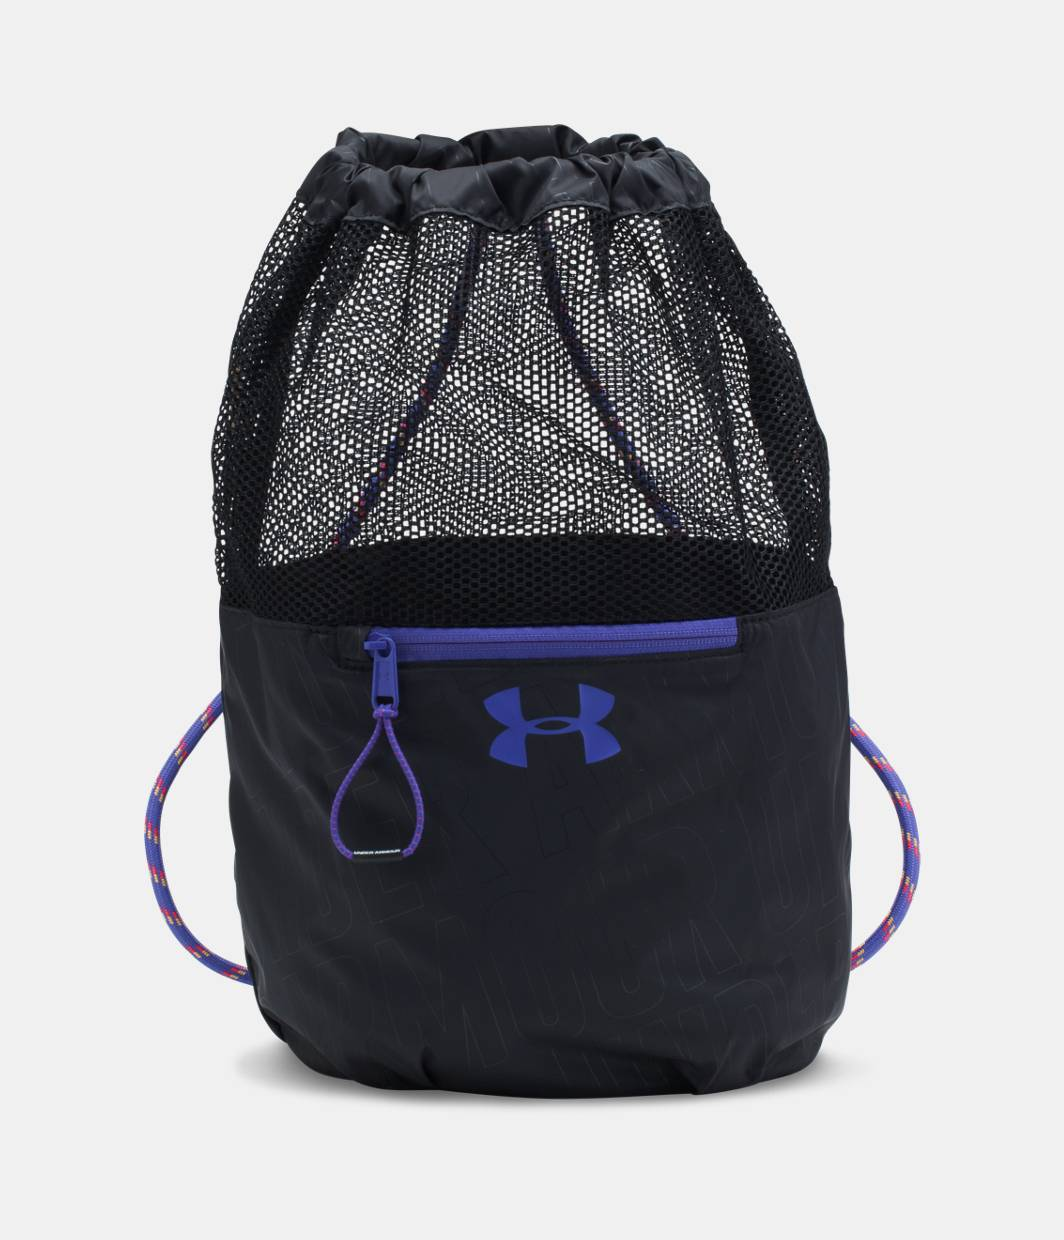 S Ua Bucket Bag 2 Colors Available 24 99